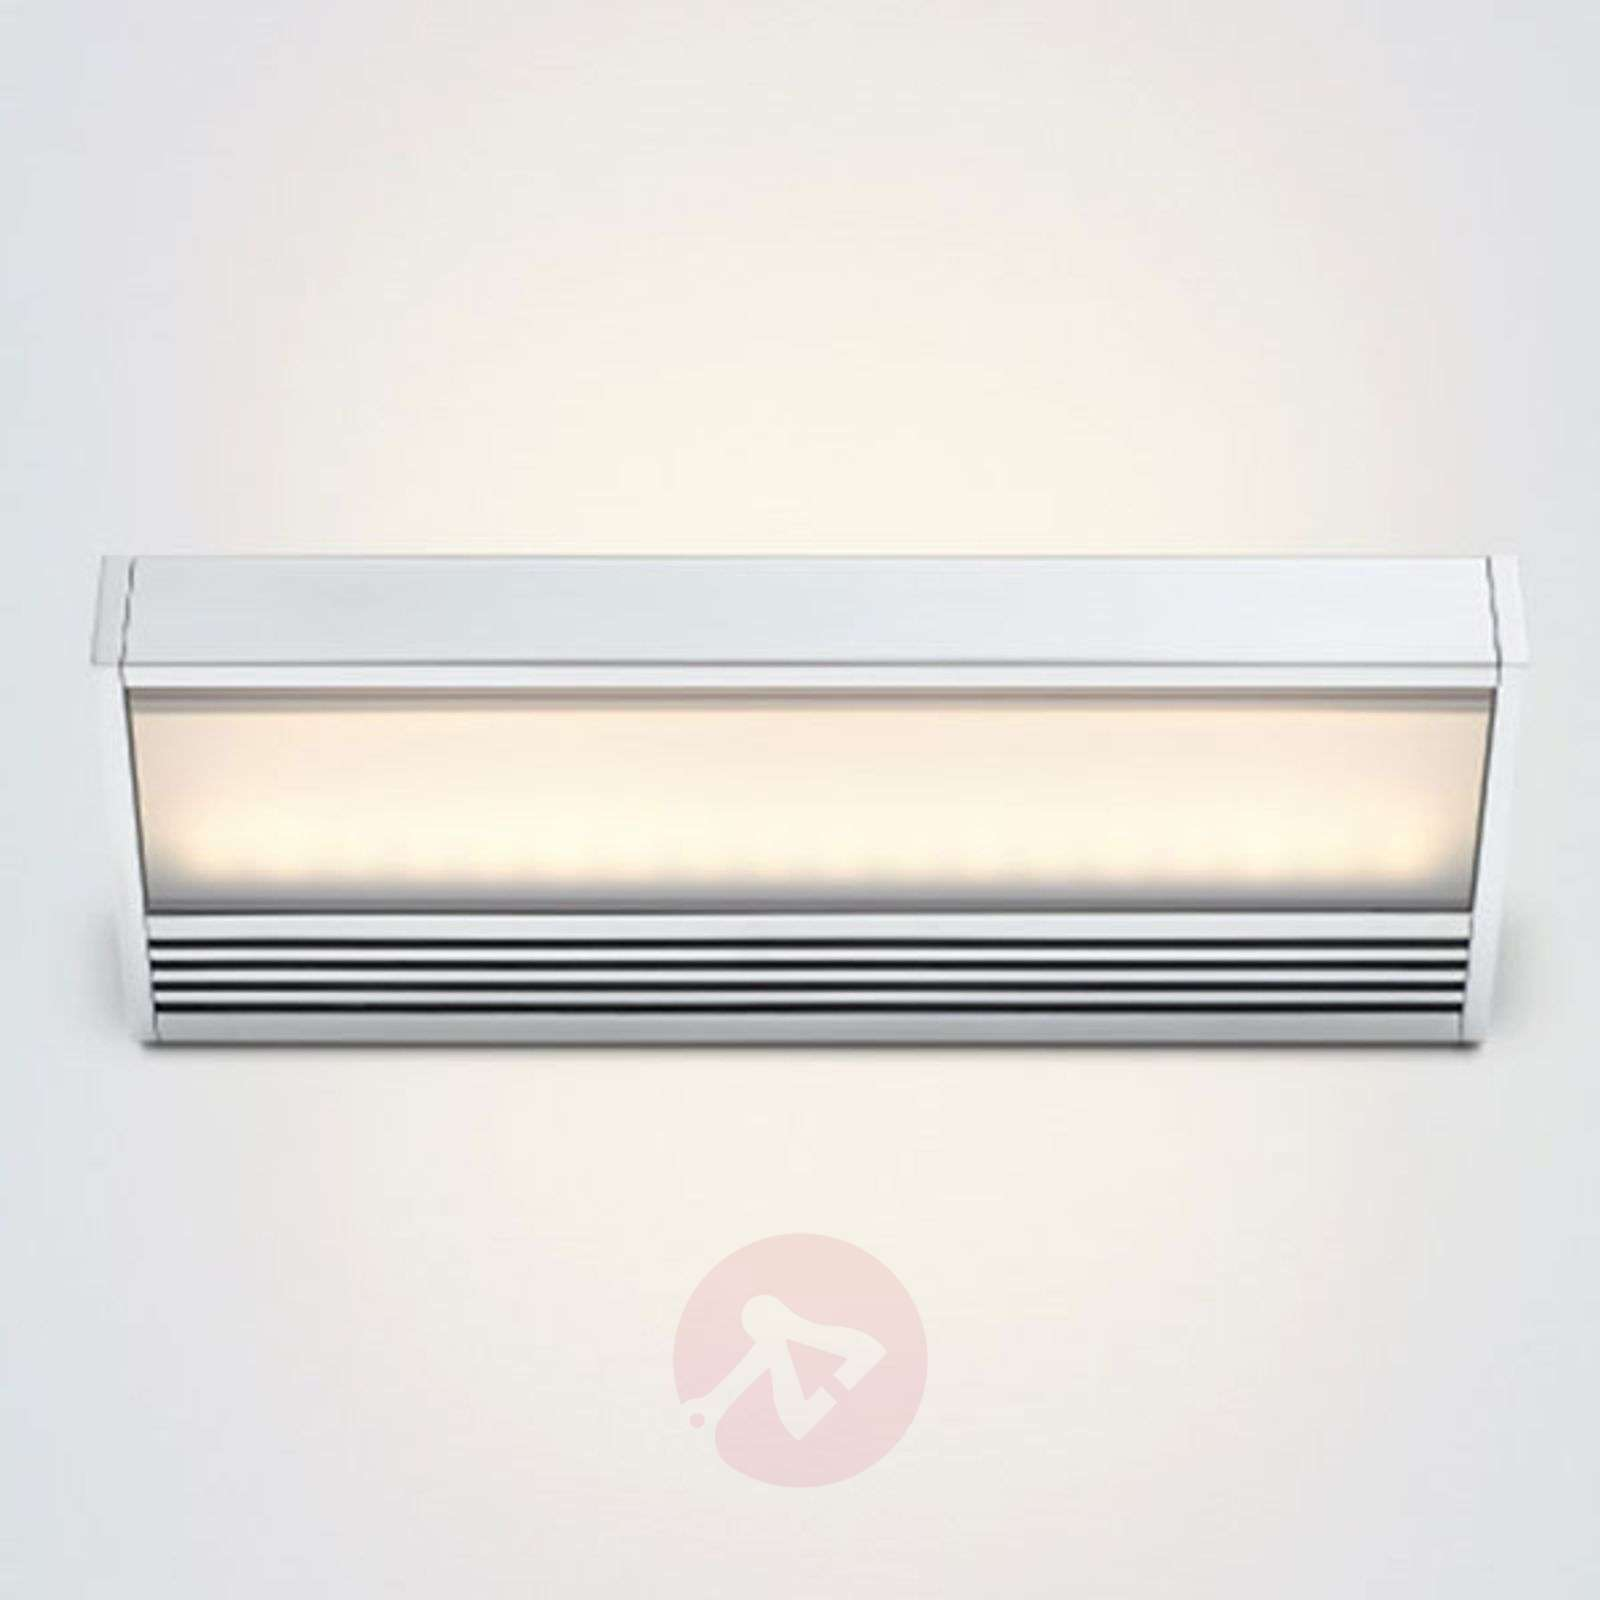 SML applique LED in alluminio lucido-8550071-01